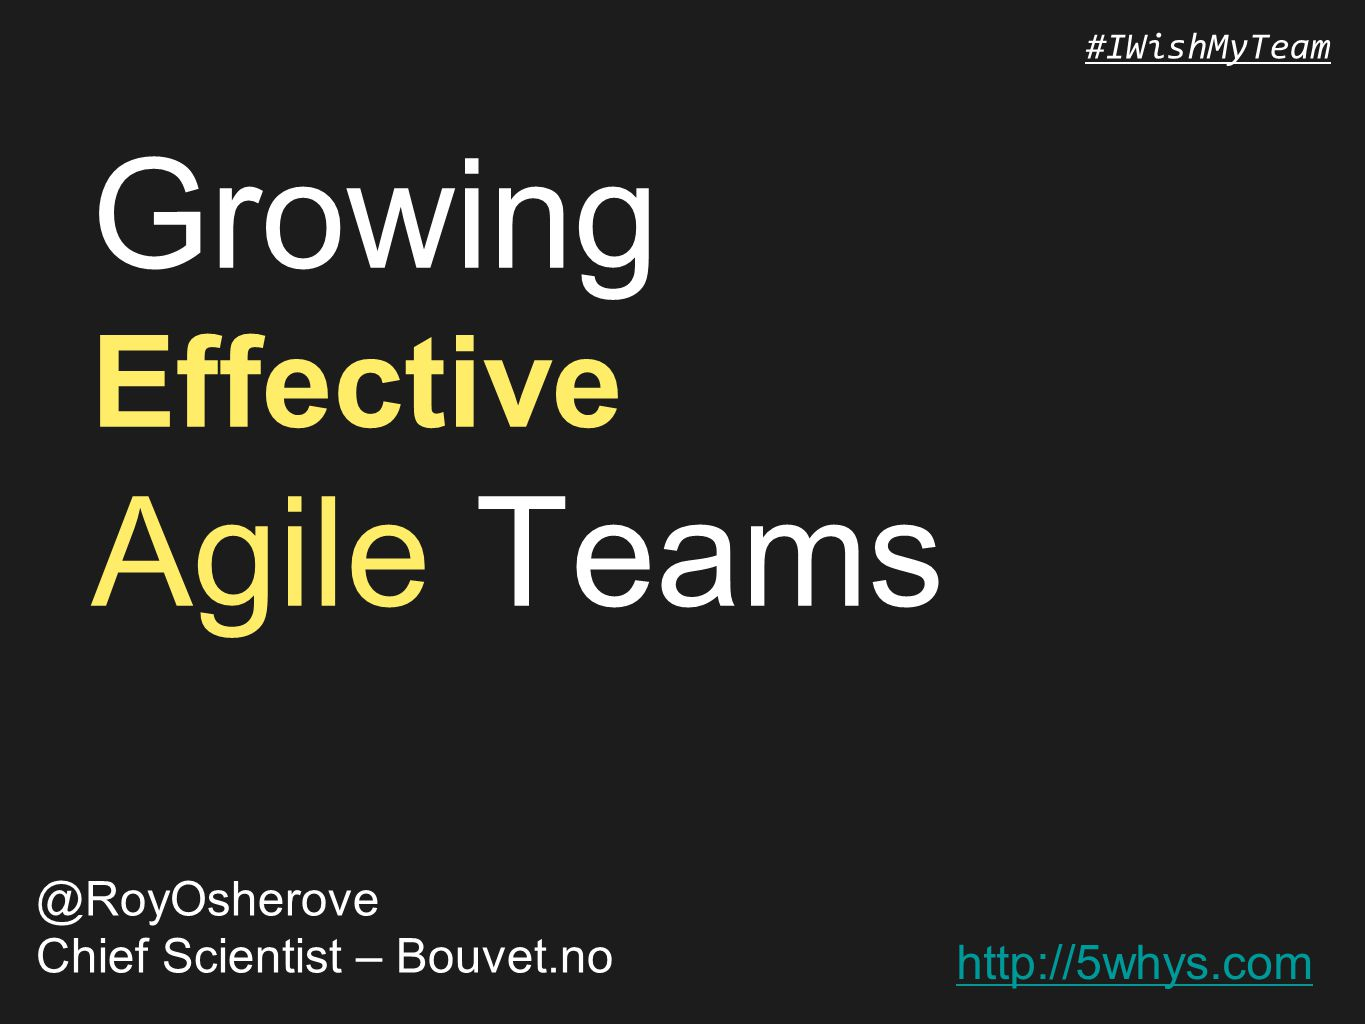 http://5whys.com #IWishMyTeam Growing Effective Agile Teams @RoyOsherove Chief Scientist – Bouvet.no